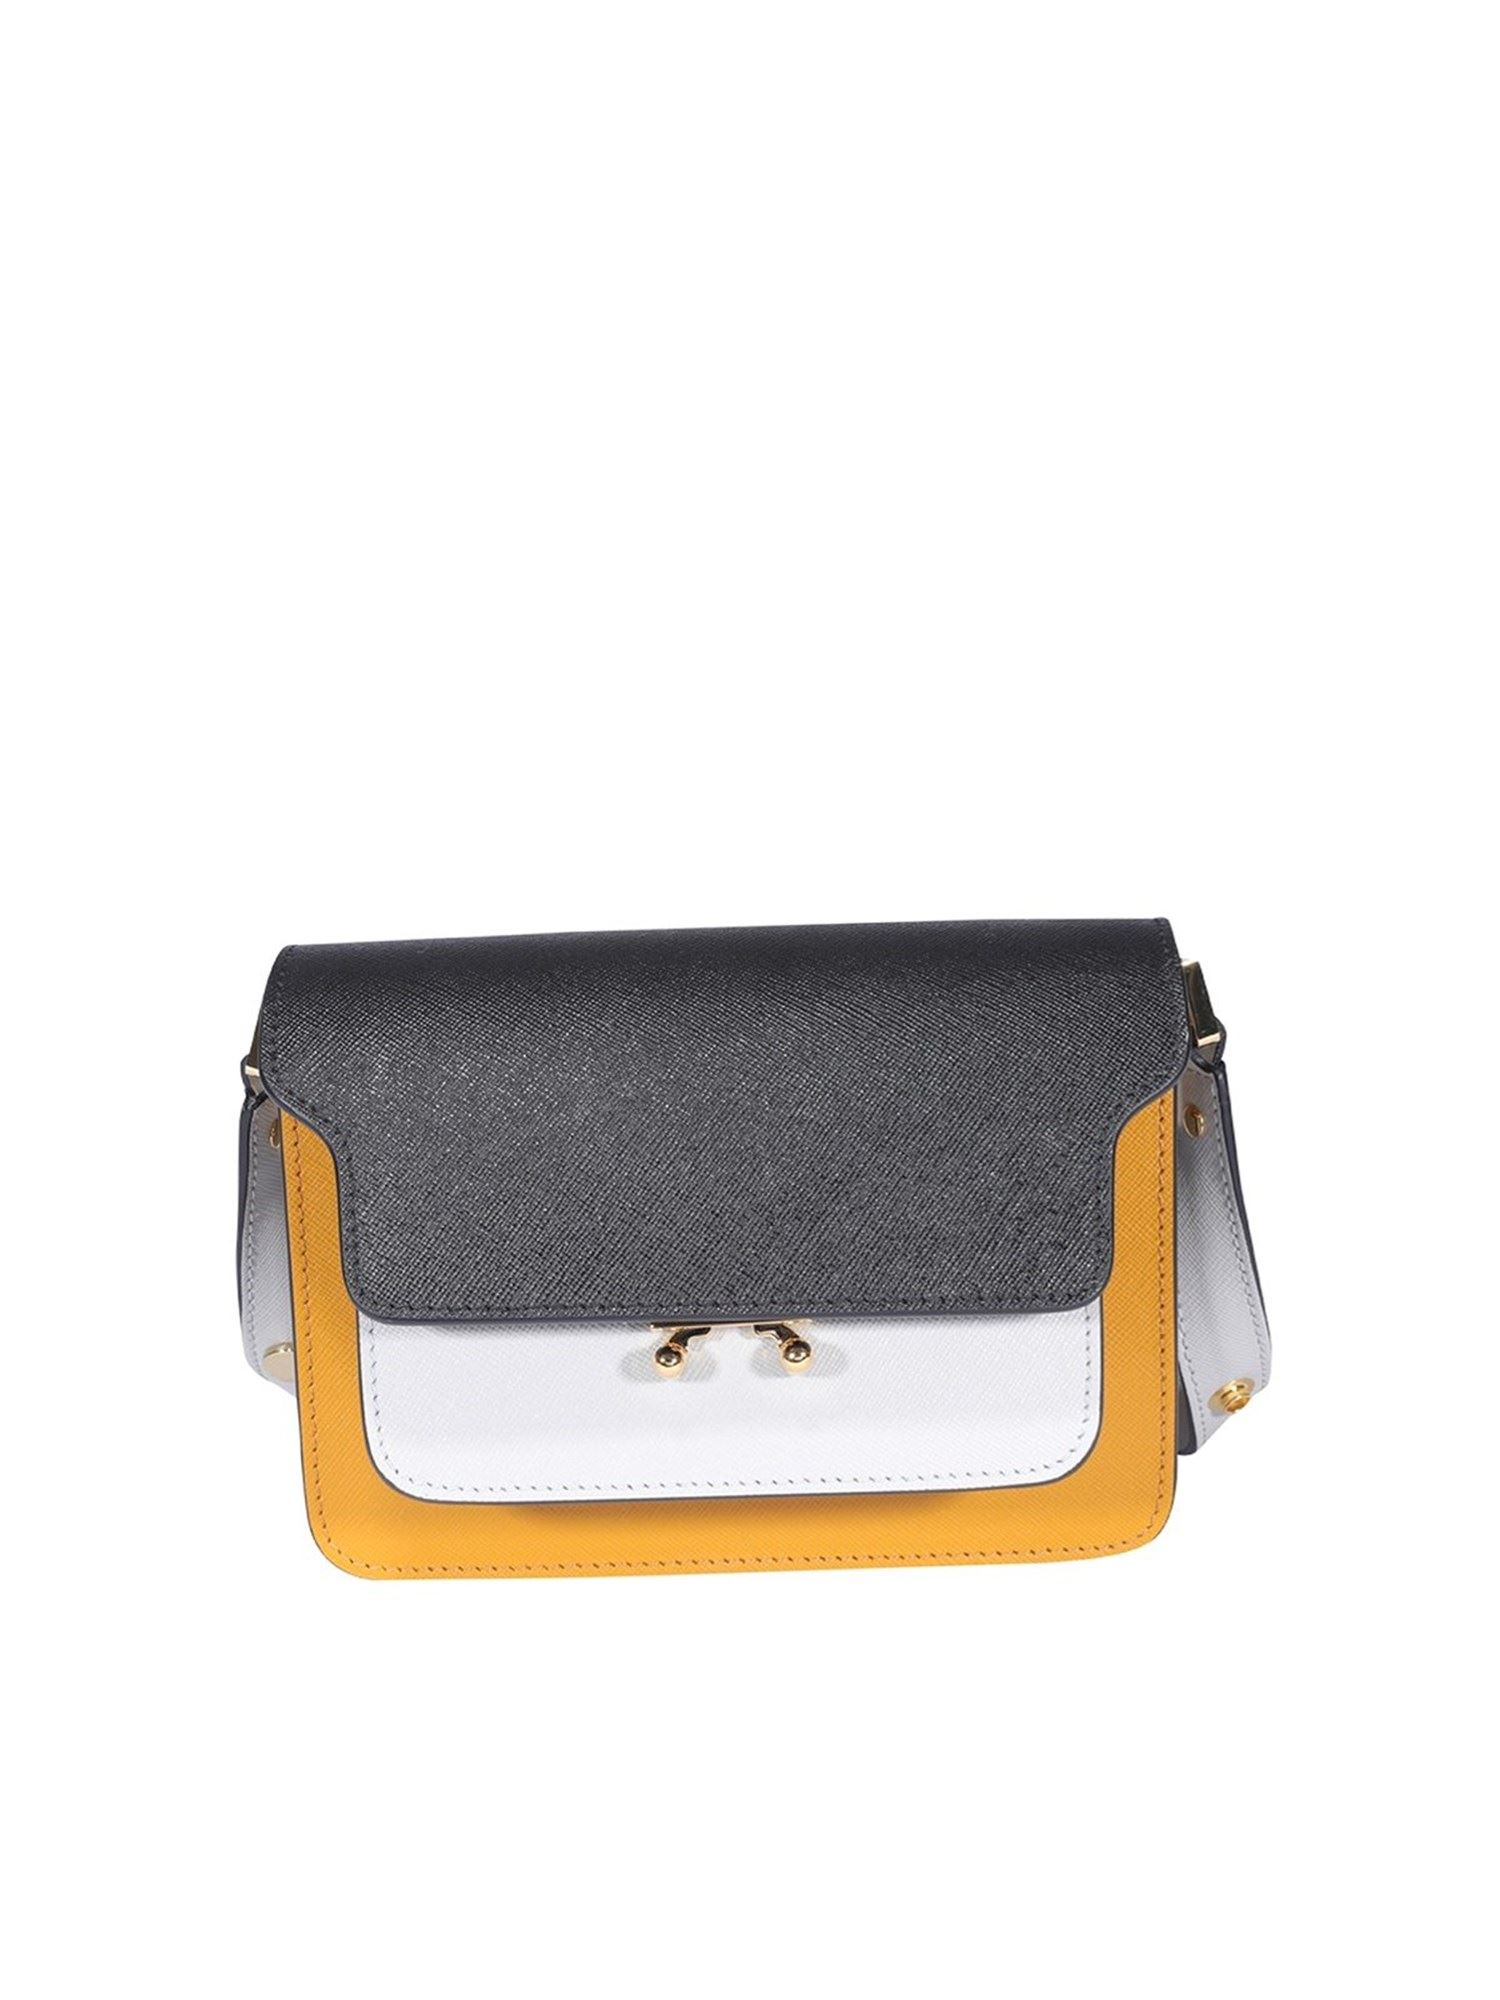 Marni TRUNK BAG IN BLACK YELLOW AND WHITE